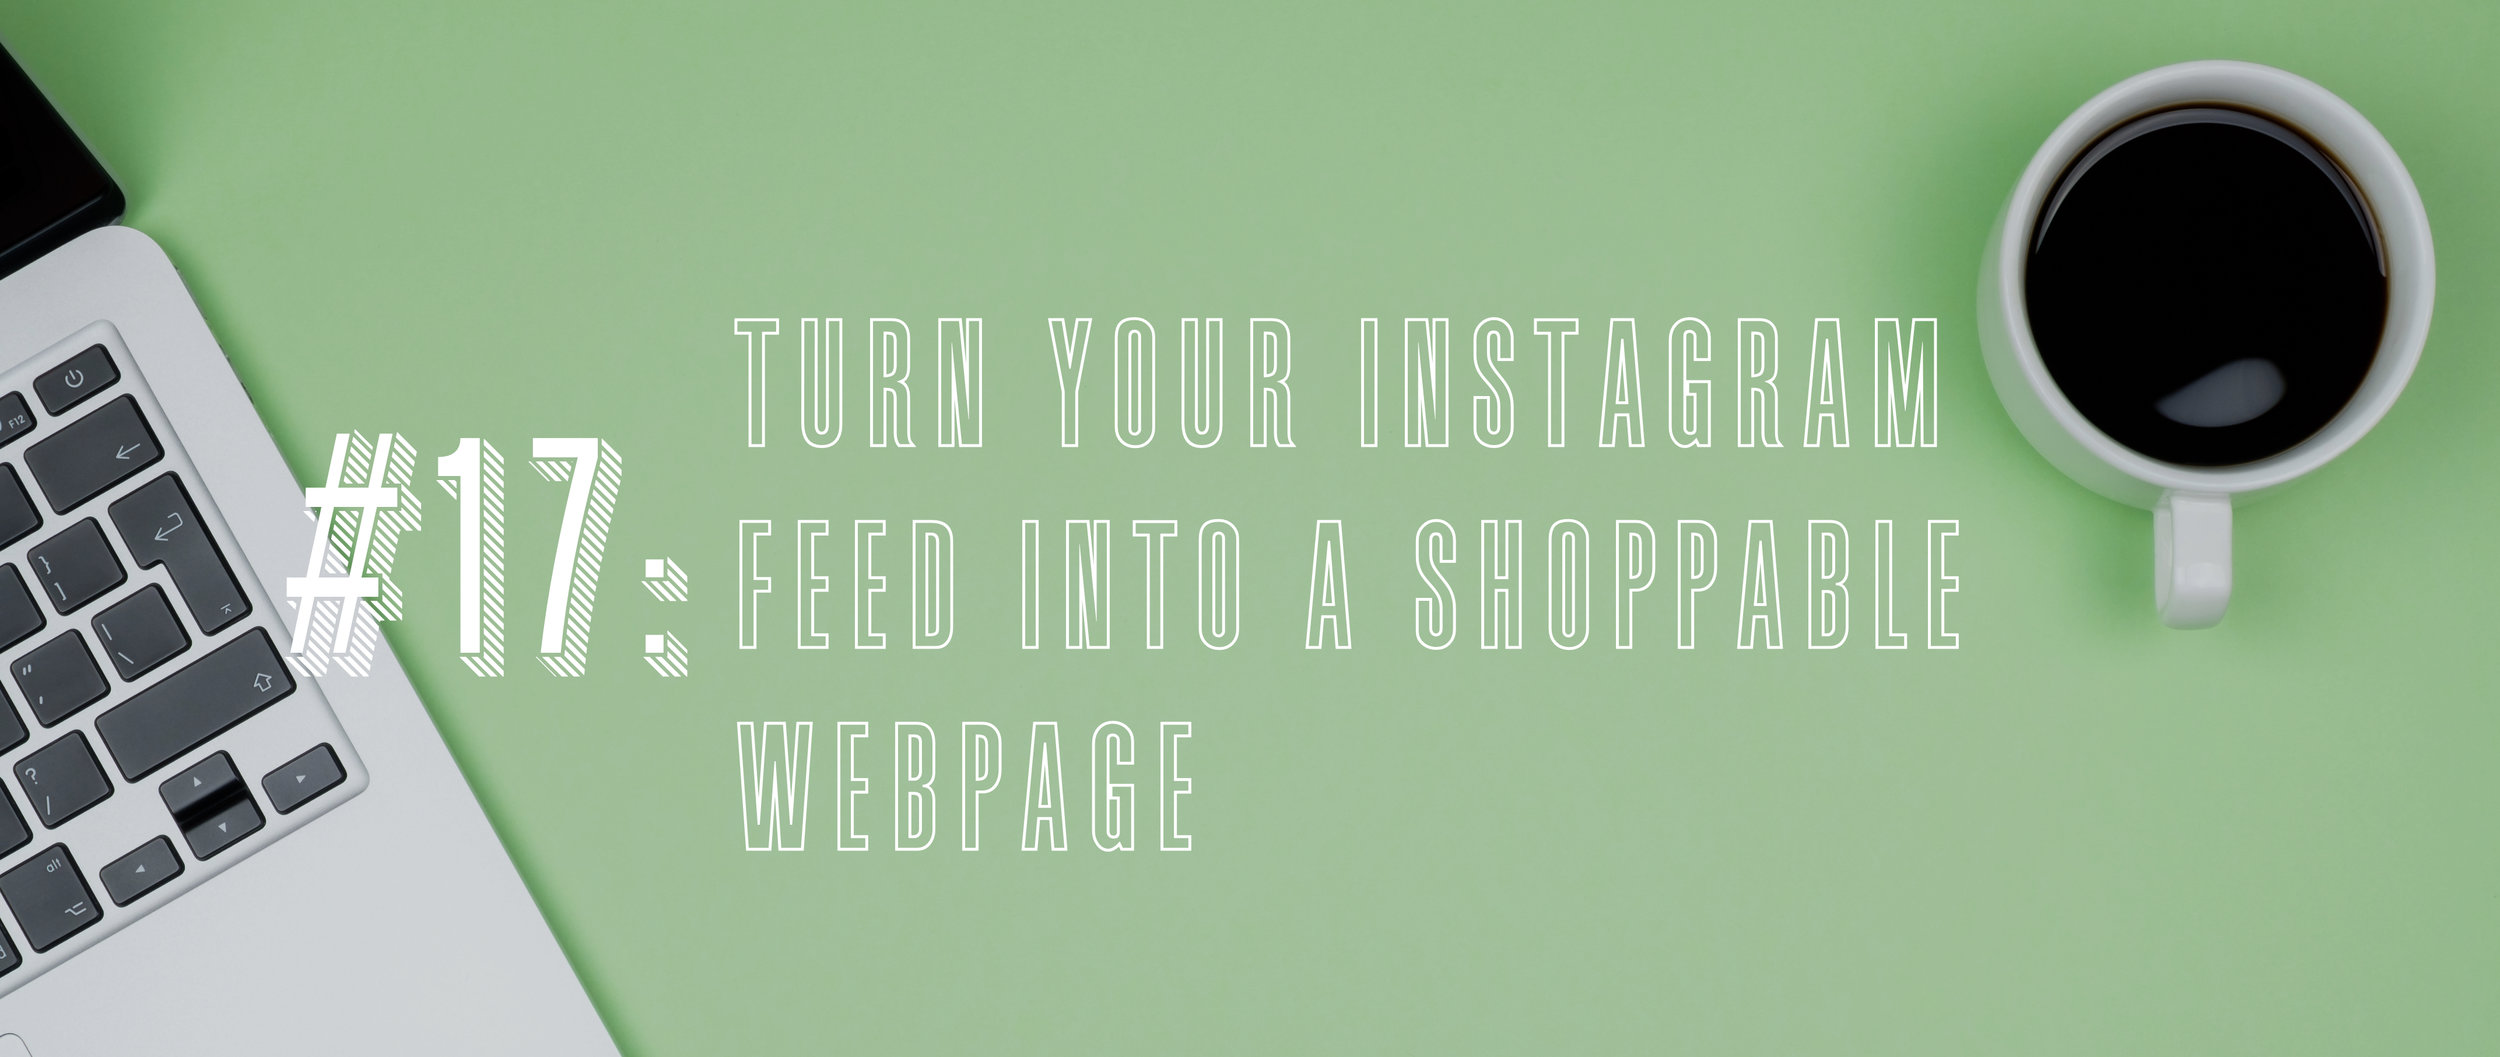 17 Turn Your Instagram Feed into a Shoppable Webpage.jpg